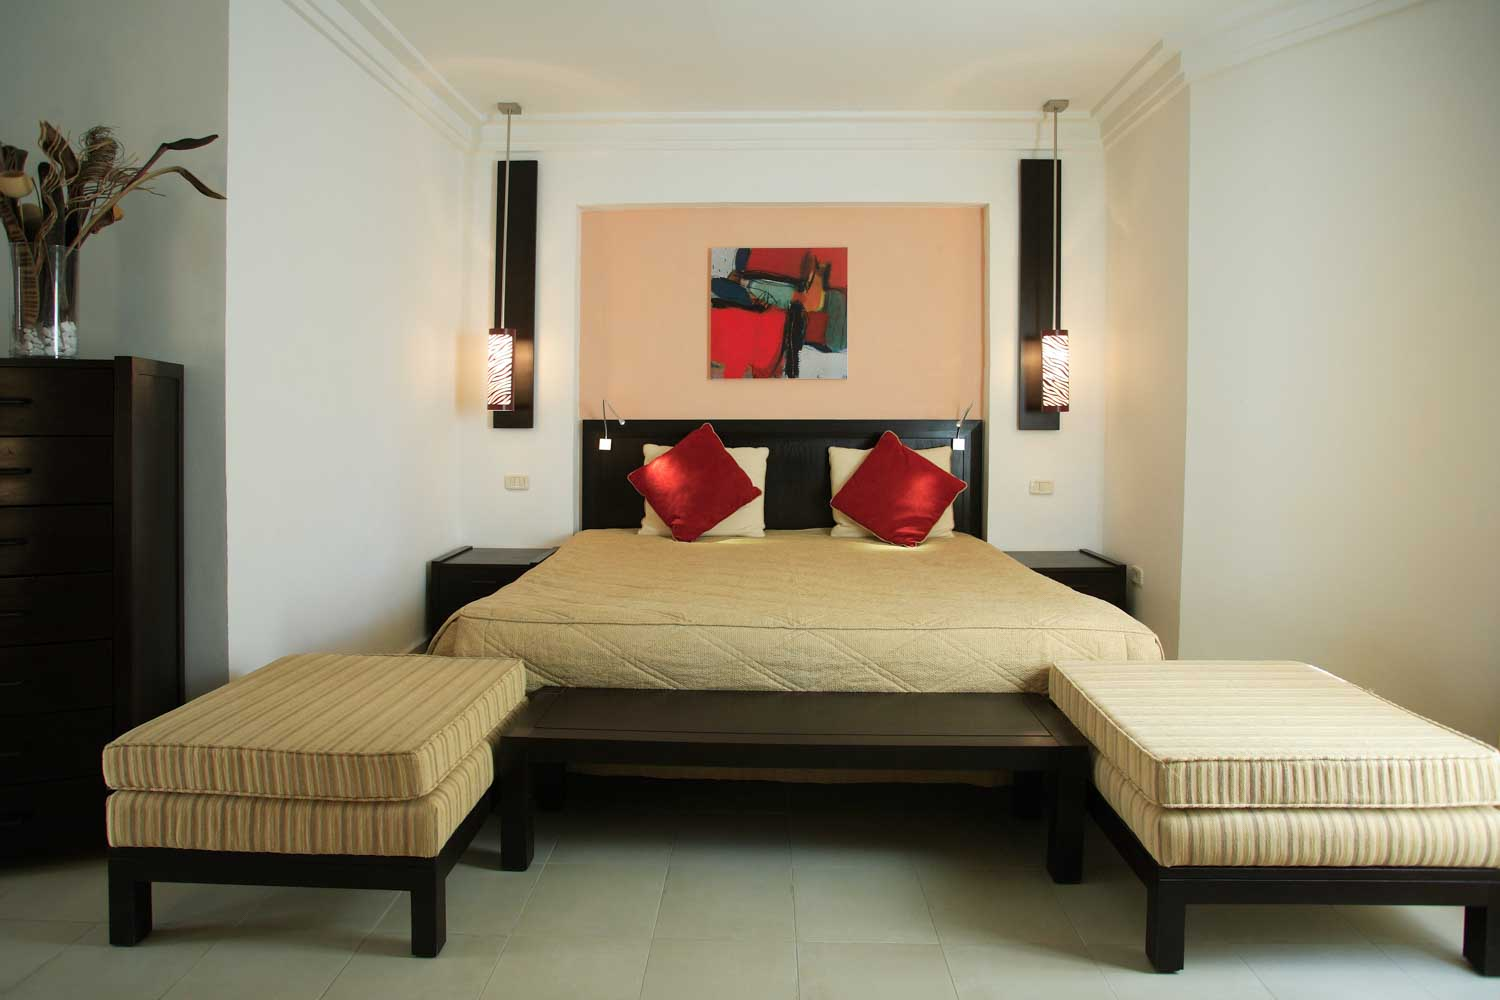 The Sindbad Room